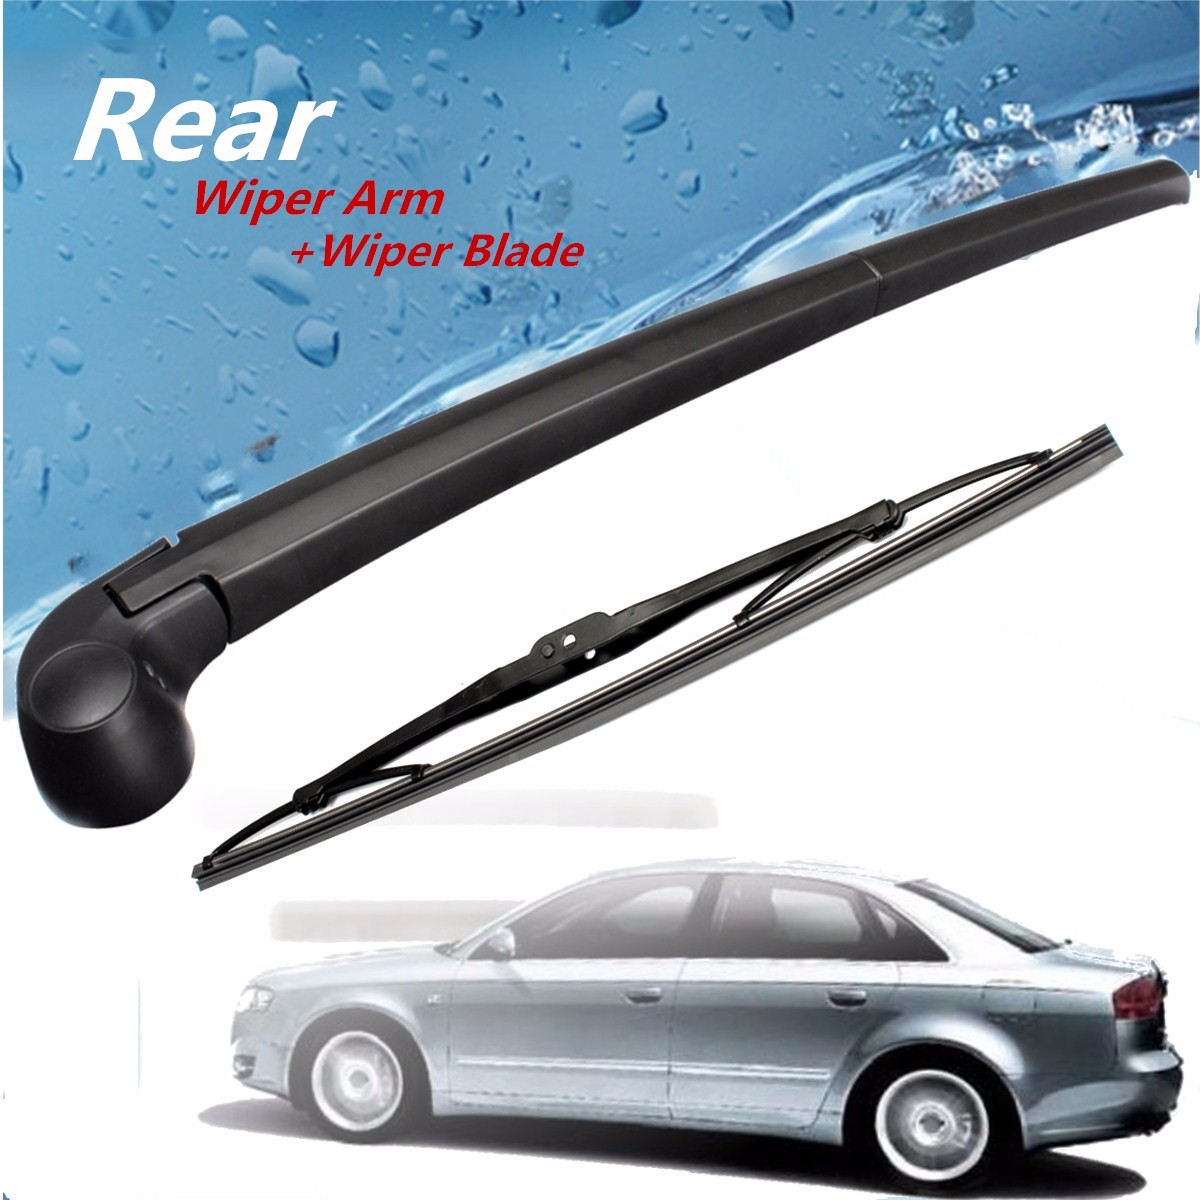 new rear window wiper arm blade for audi a4 b6 b7 avant estate 01 rh aliexpress com 2002 Audi A4 Audi A4 Windshield Wipers